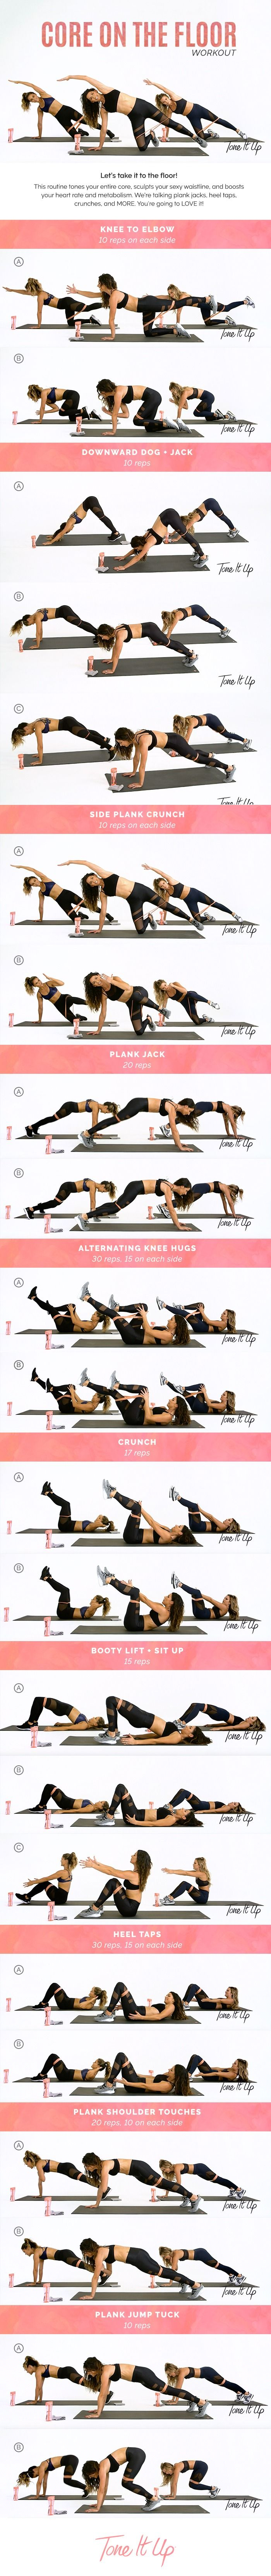 New Core on the floor workout! Watch the video with Becca Tilley on ToneItUp.com